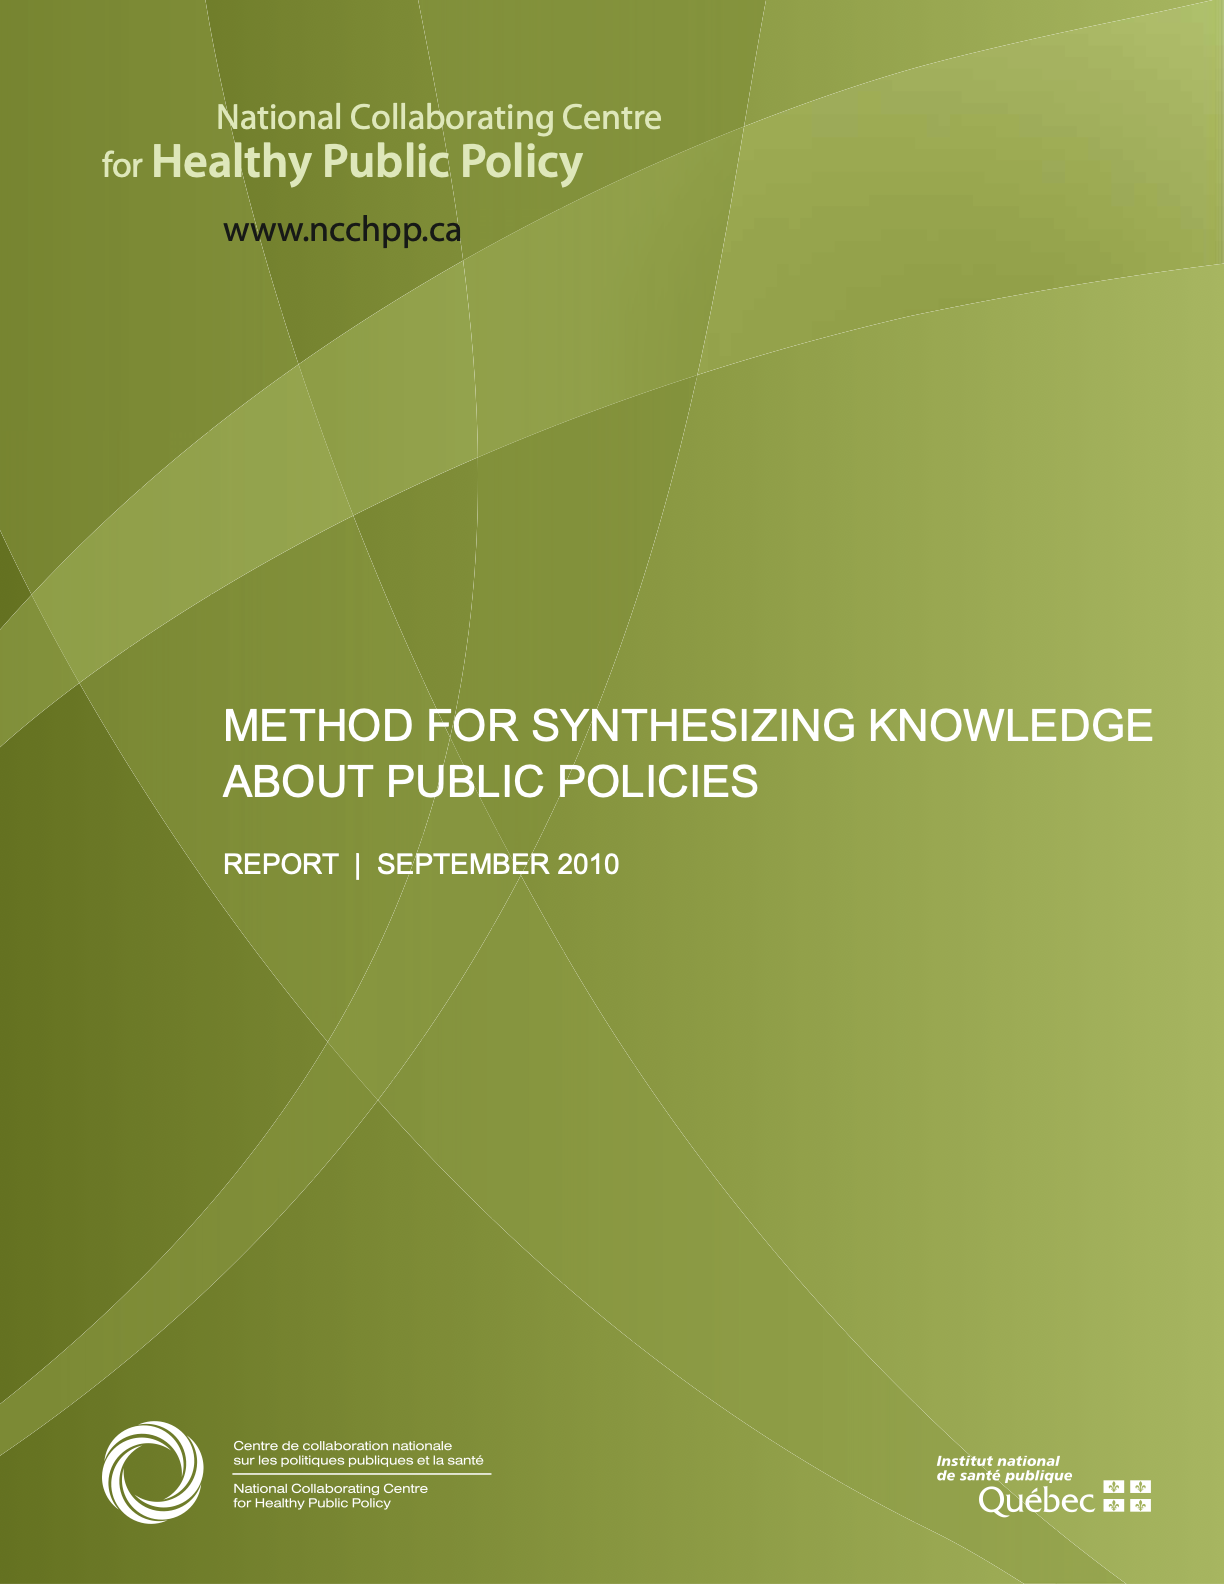 Method for Synthesizing Knowledge about Public Policies